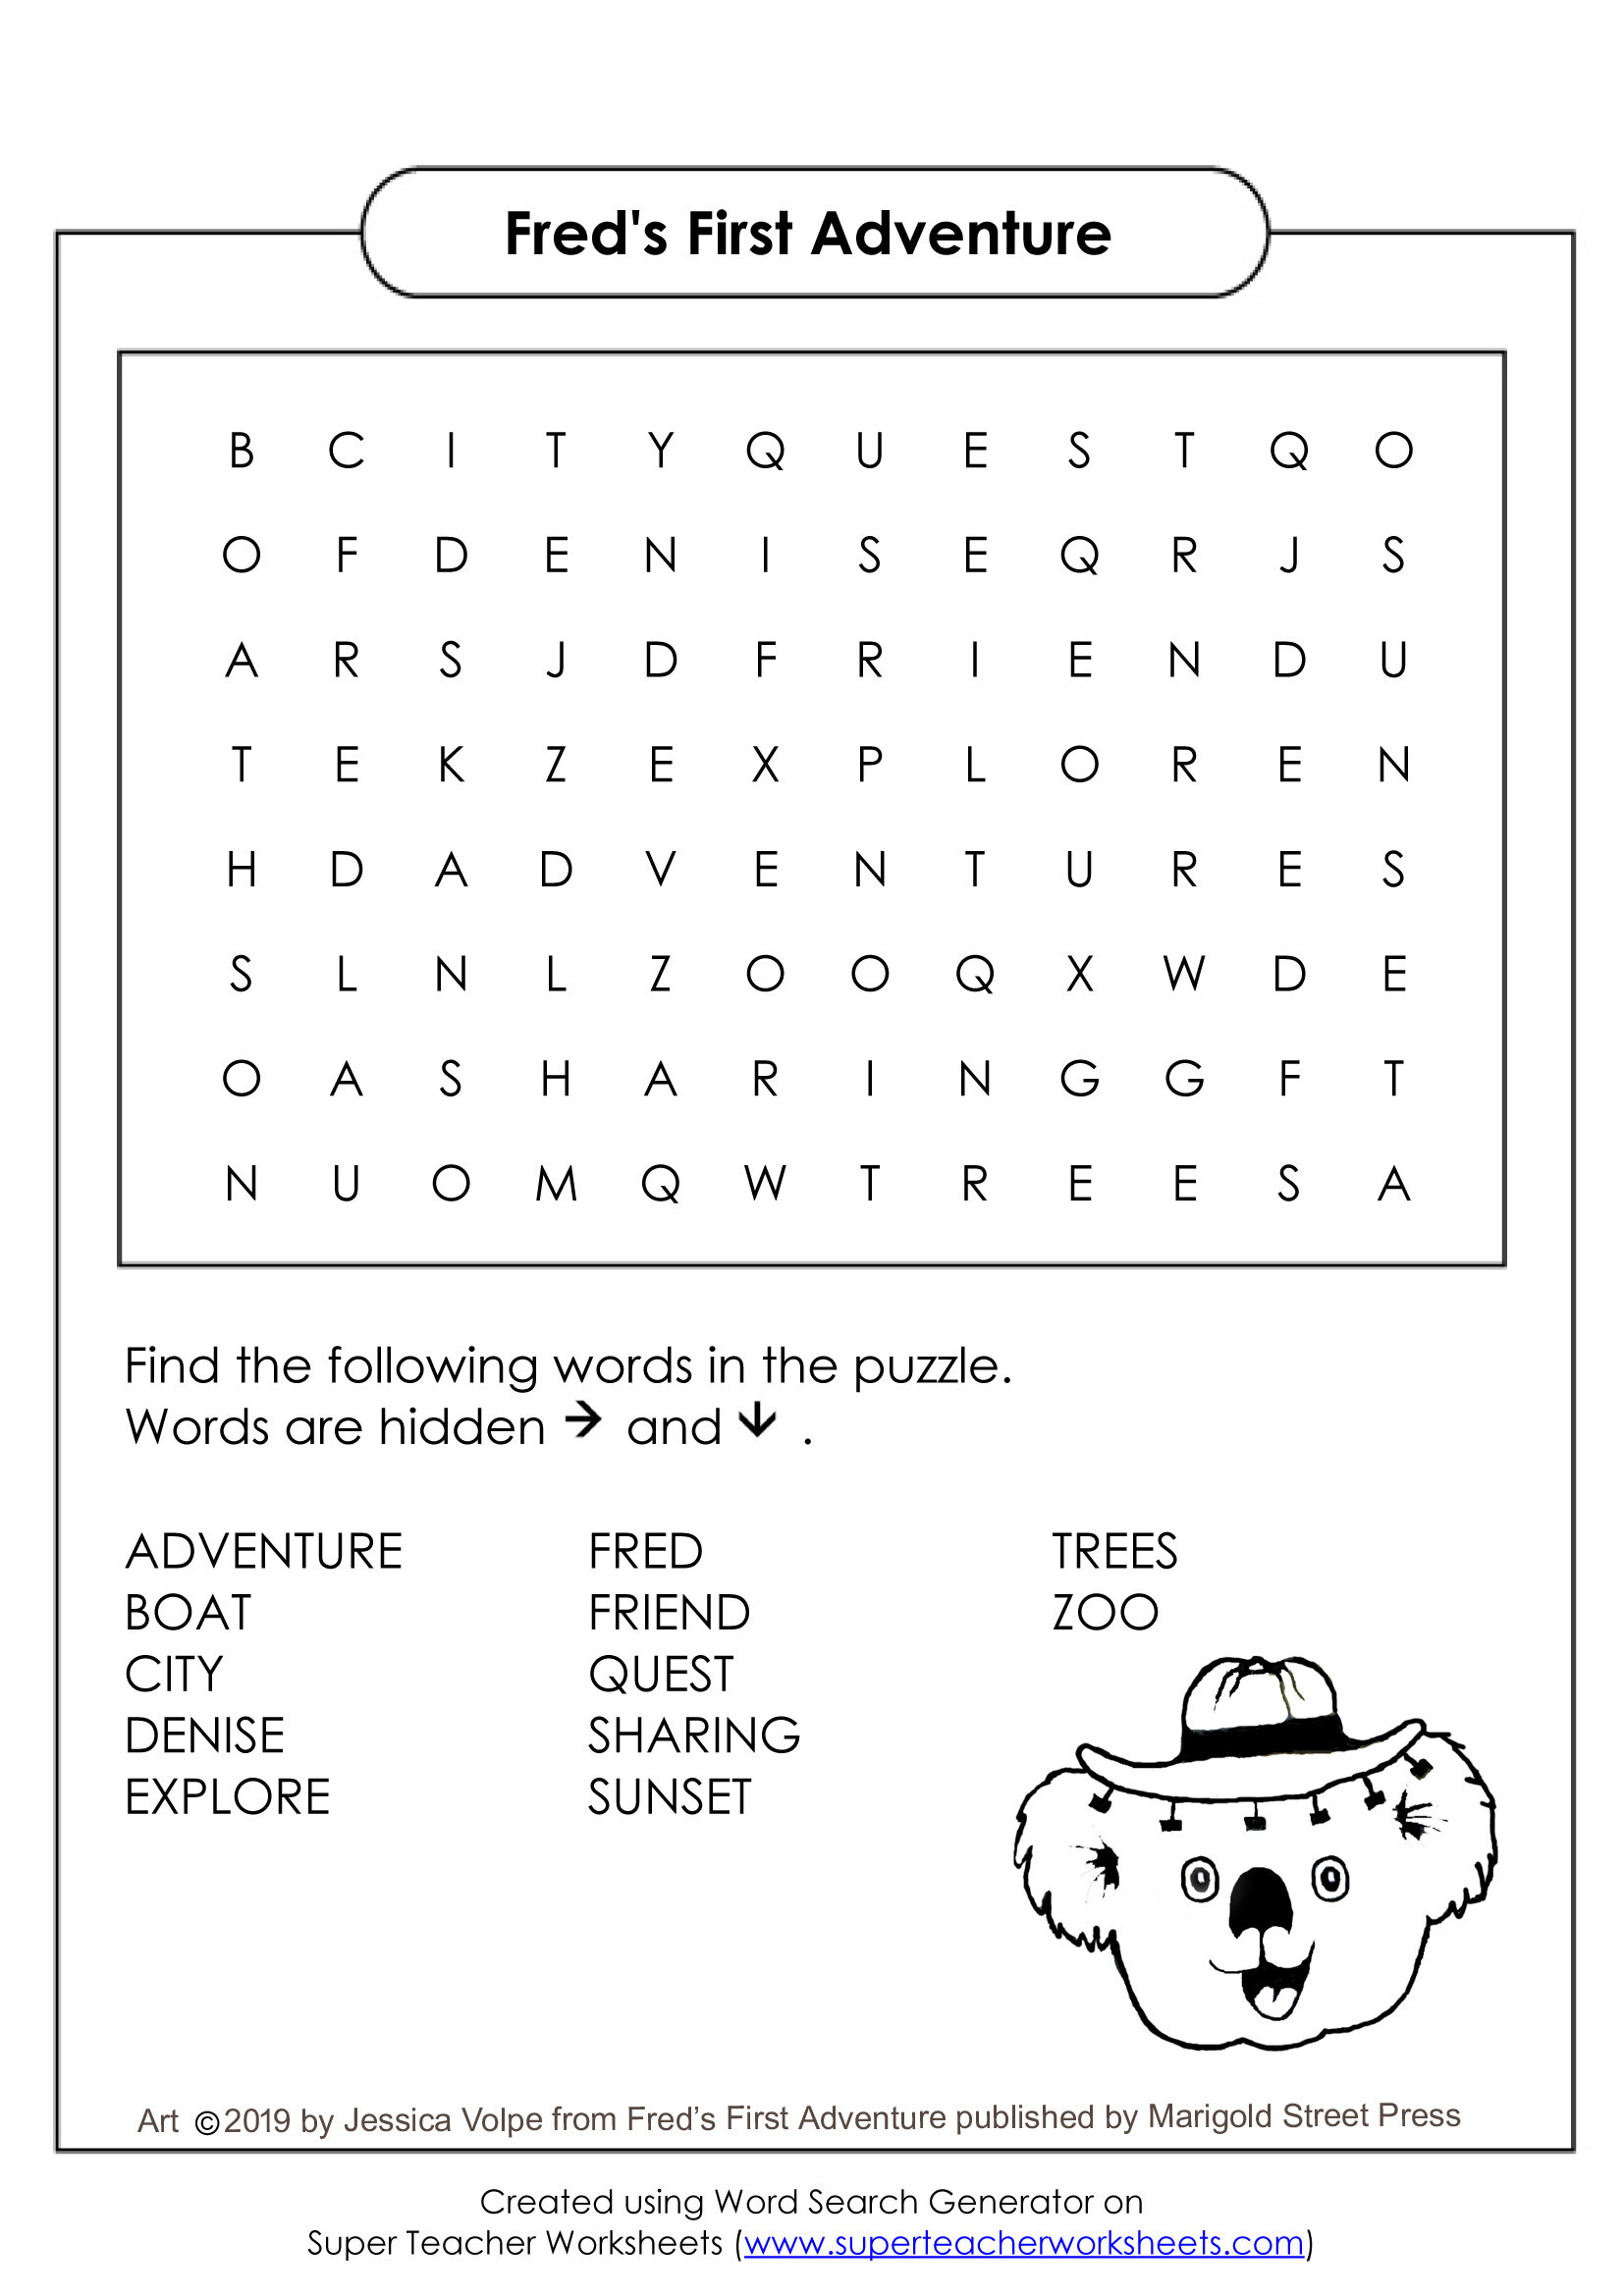 Here's a fun word search to challenge your brain!